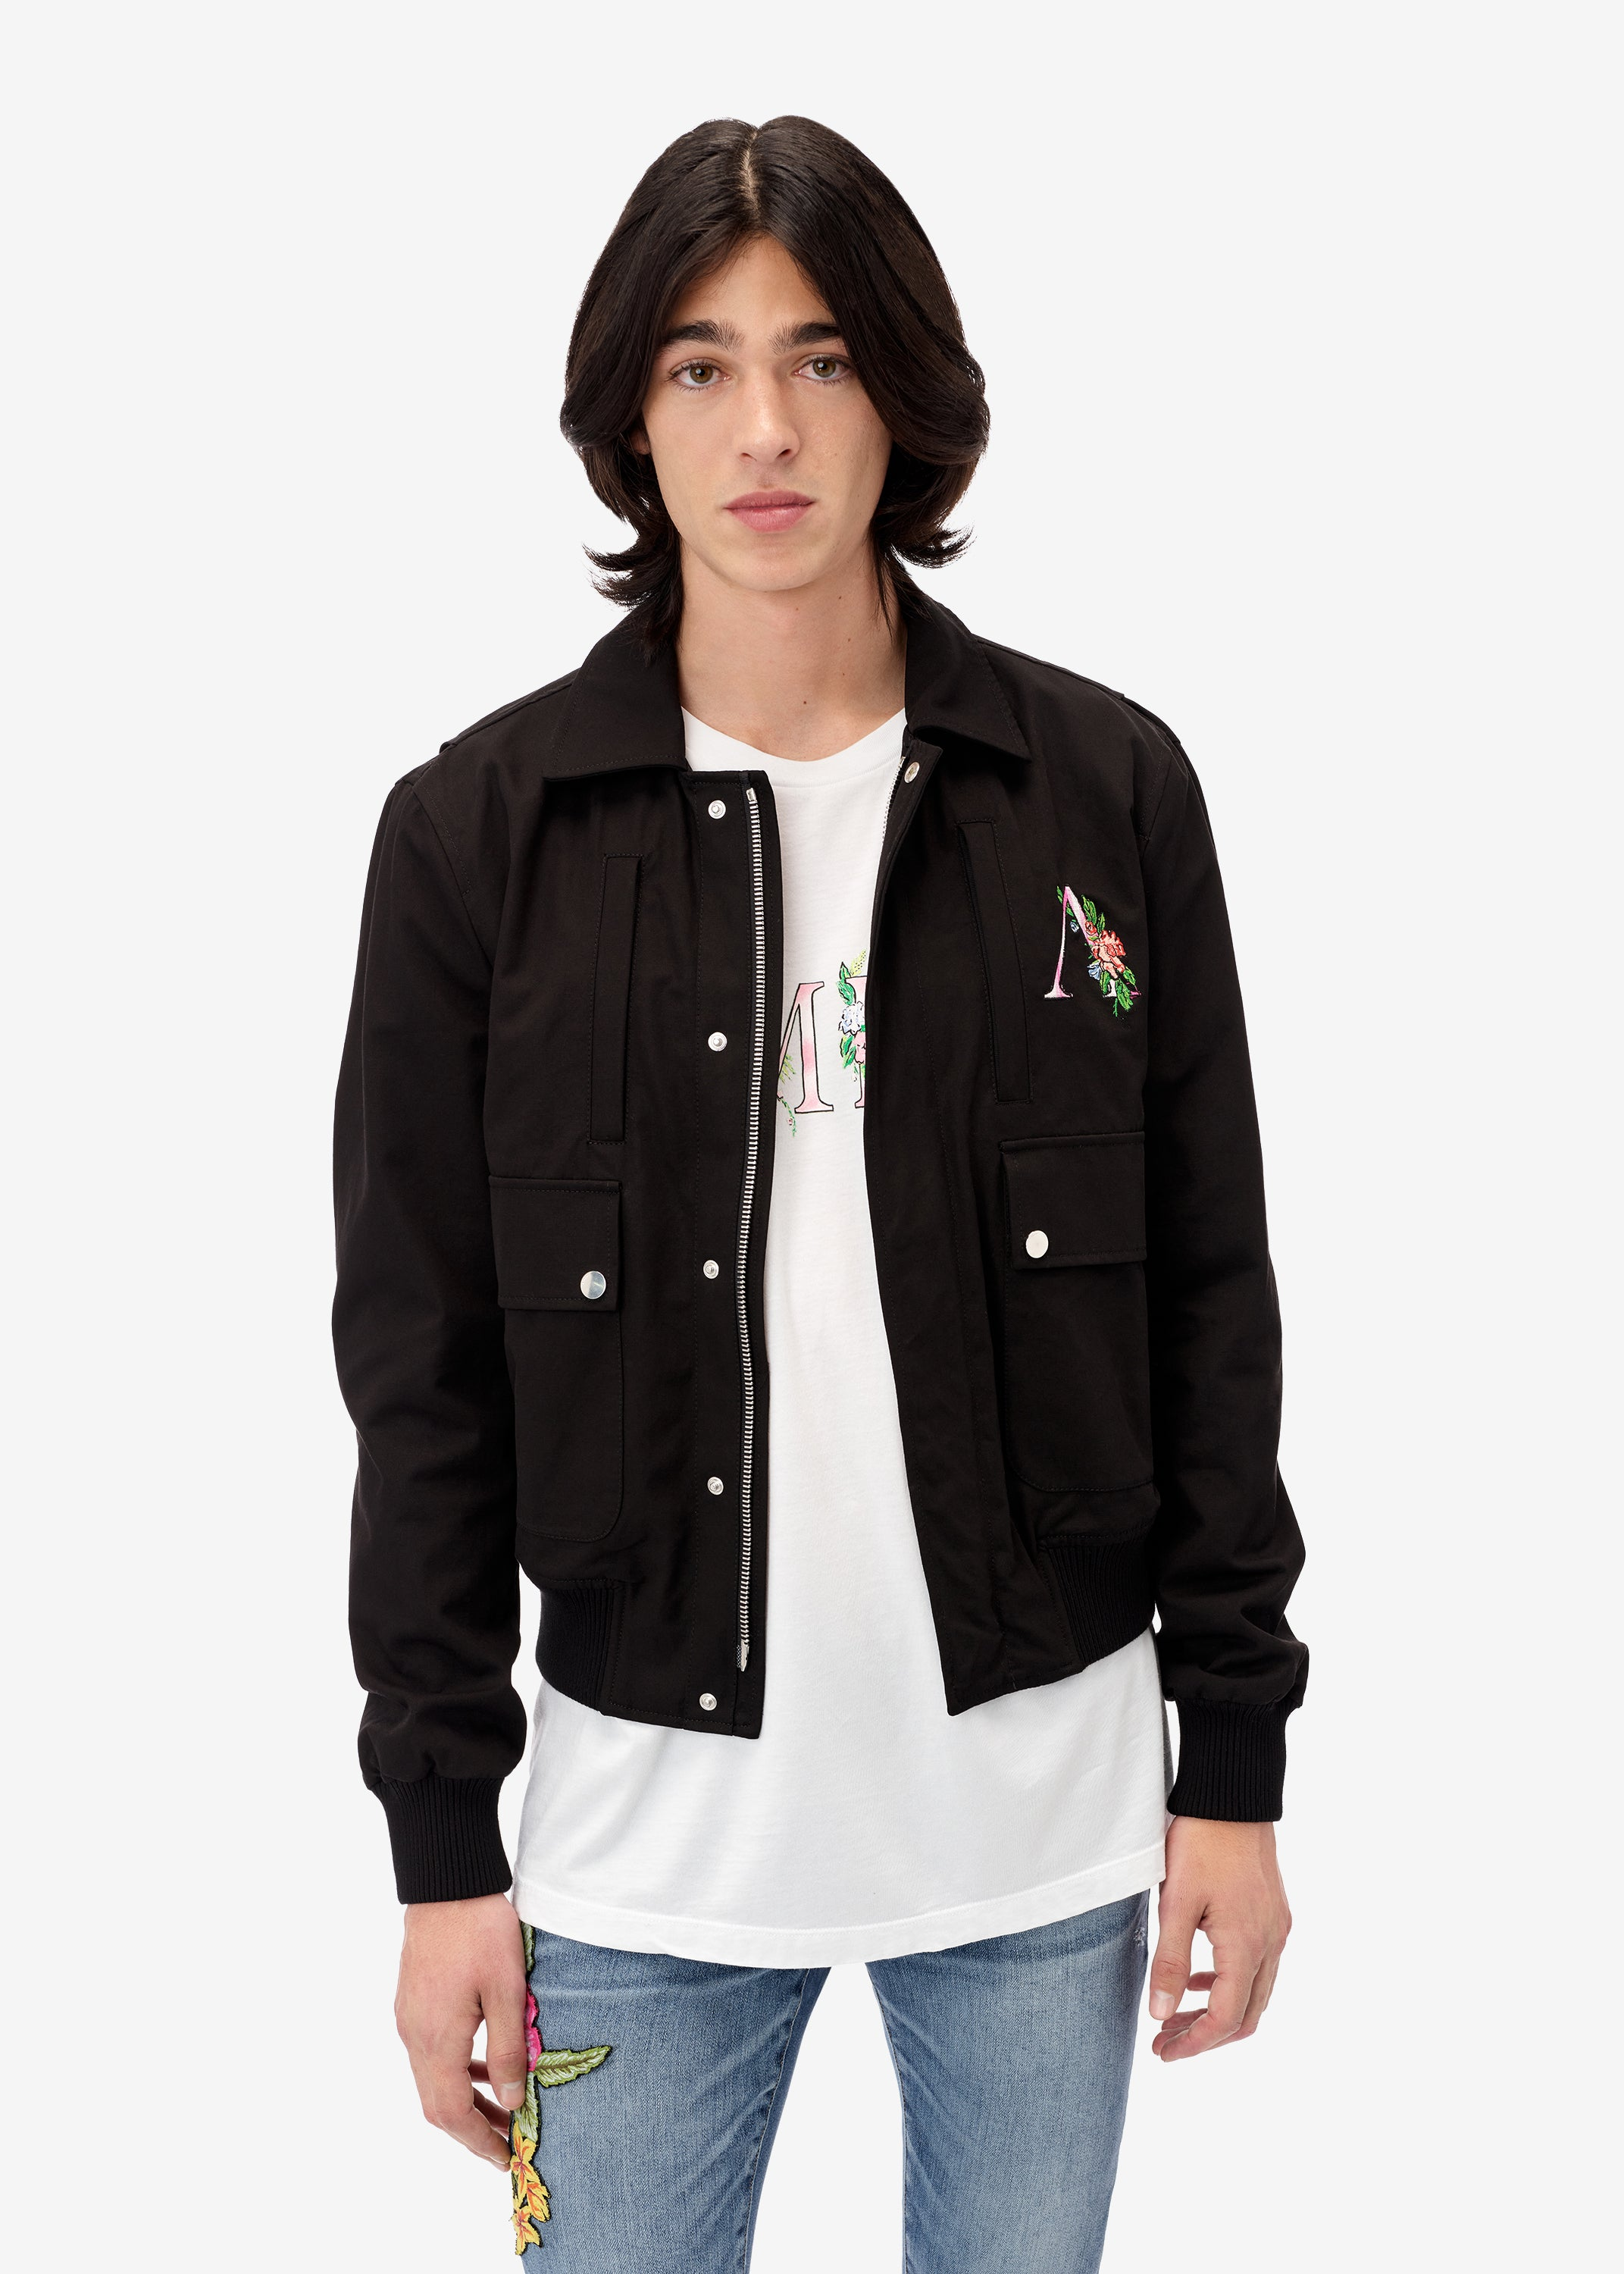 floral-amiri-zipped-jacket-black-image-1